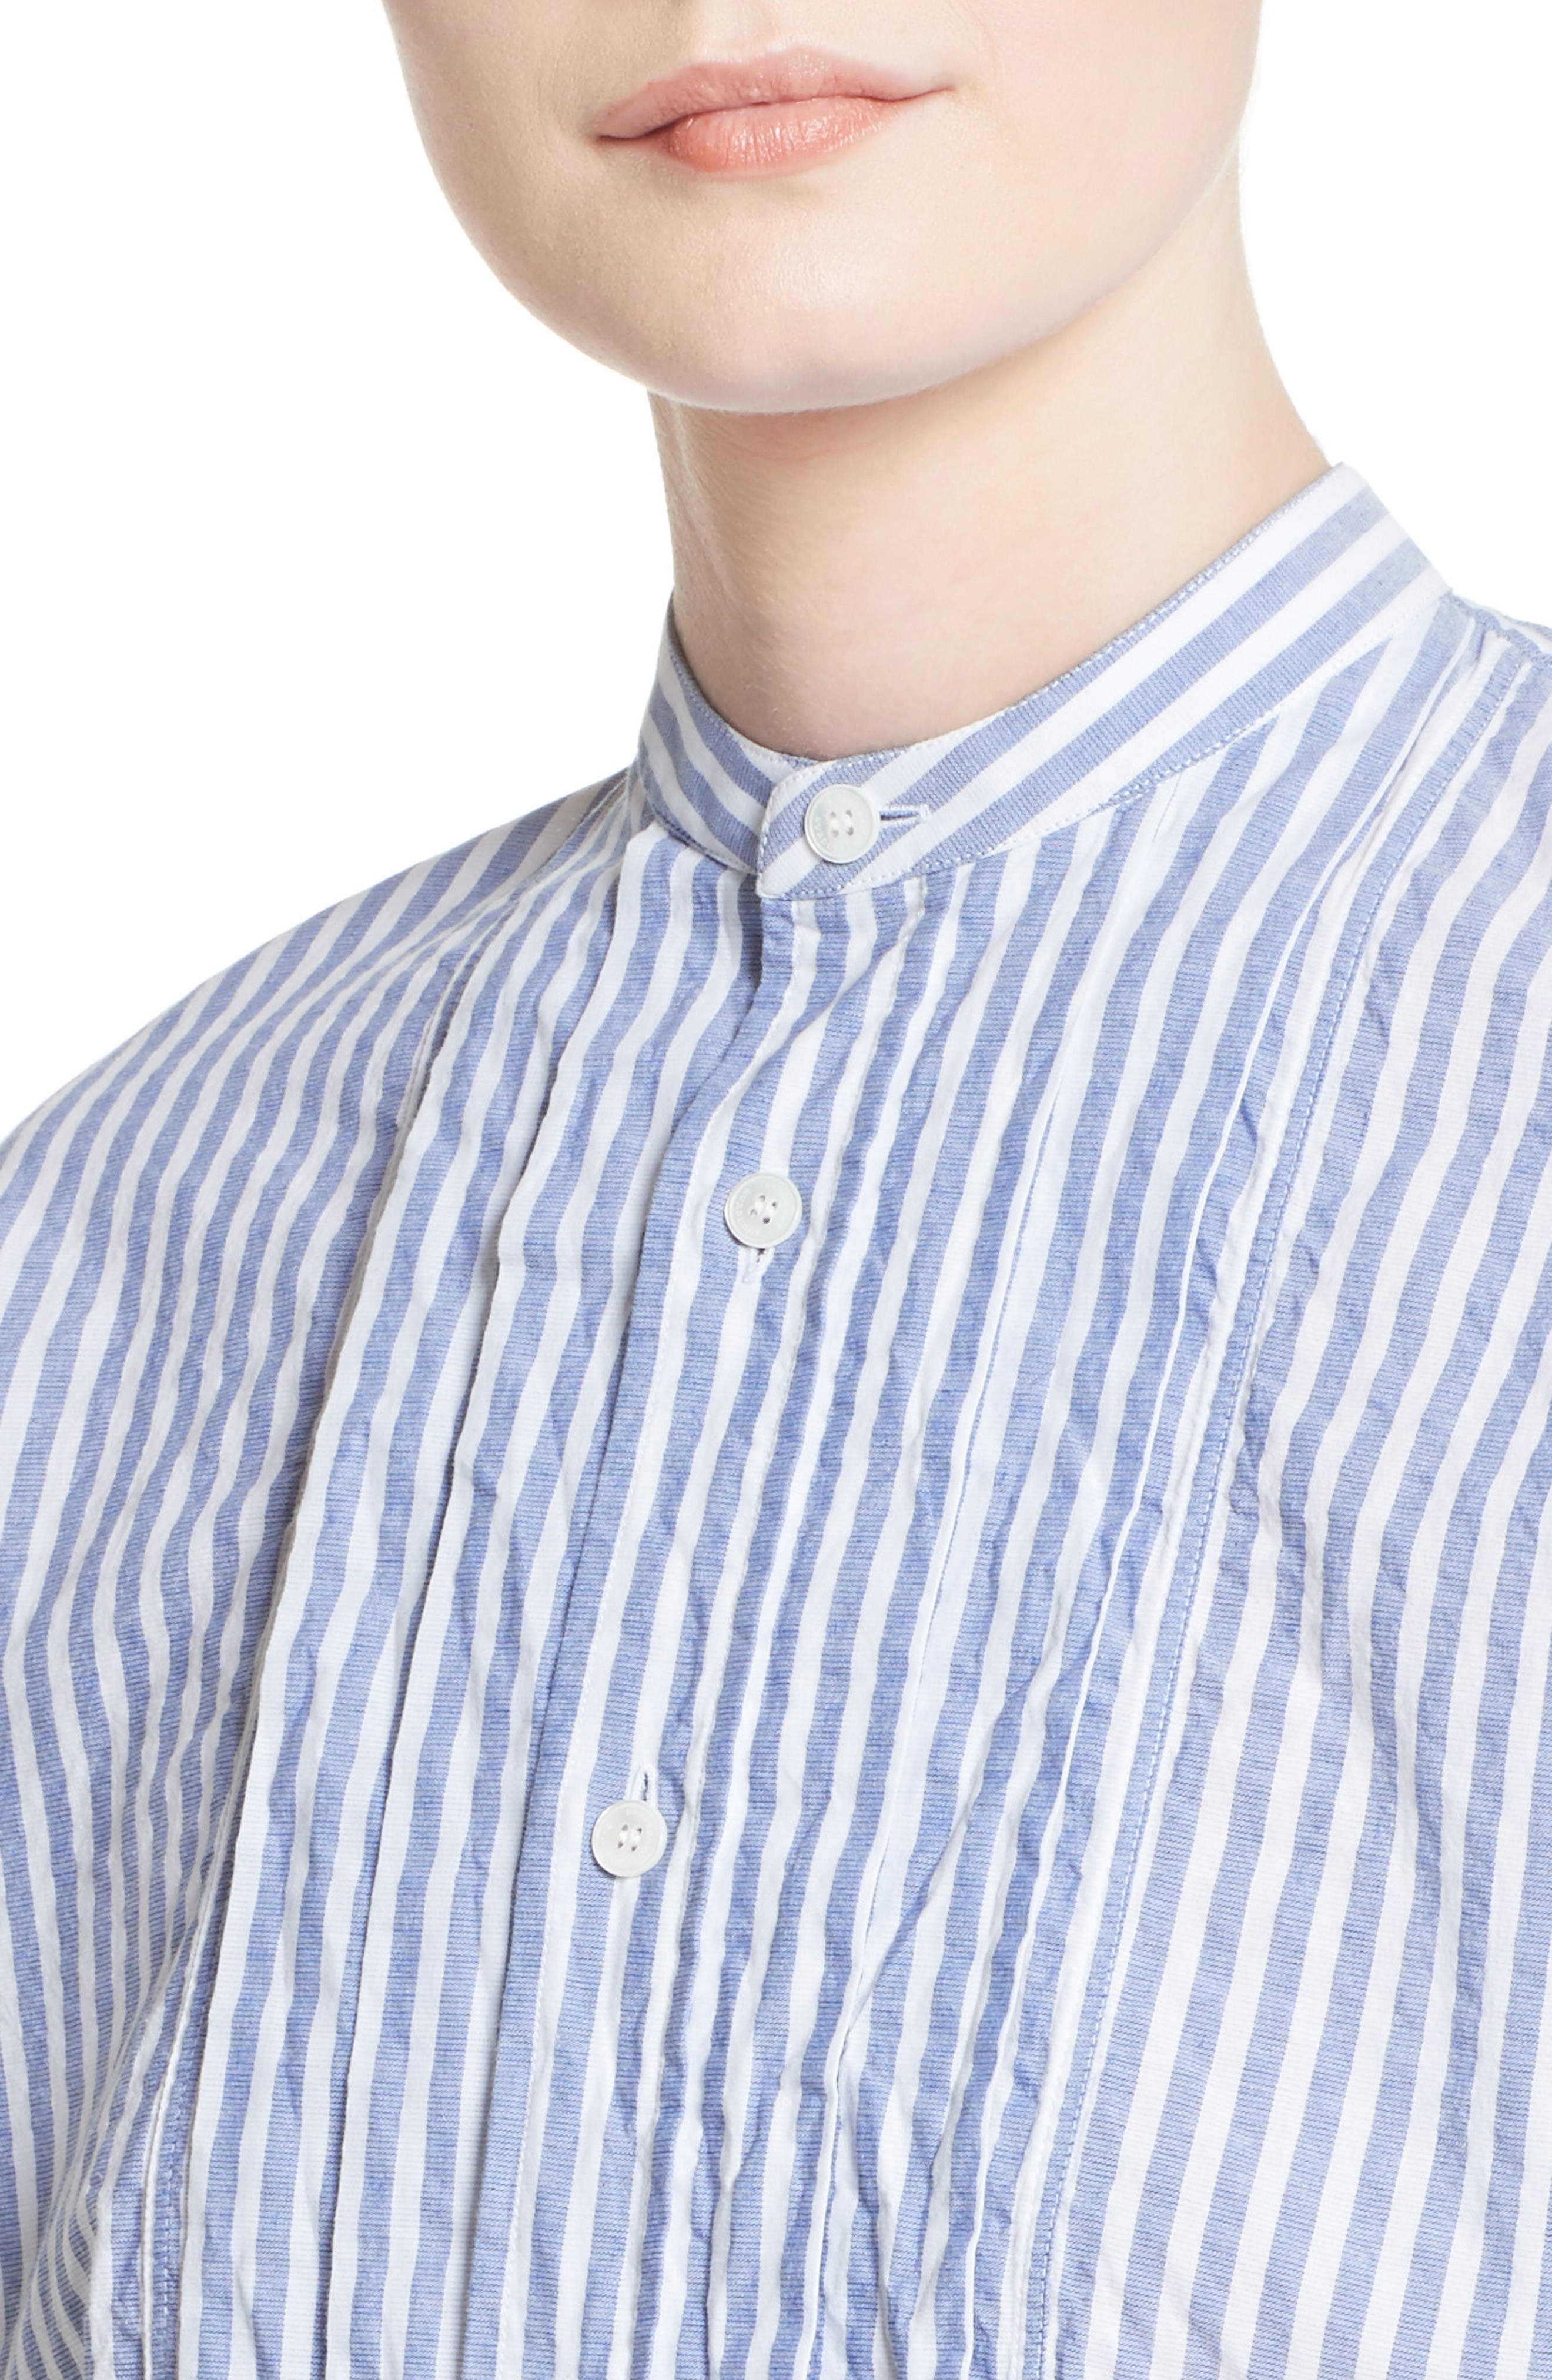 Benfleet Stripe Cotton Top,                             Alternate thumbnail 6, color,                             Pale Blue/ White